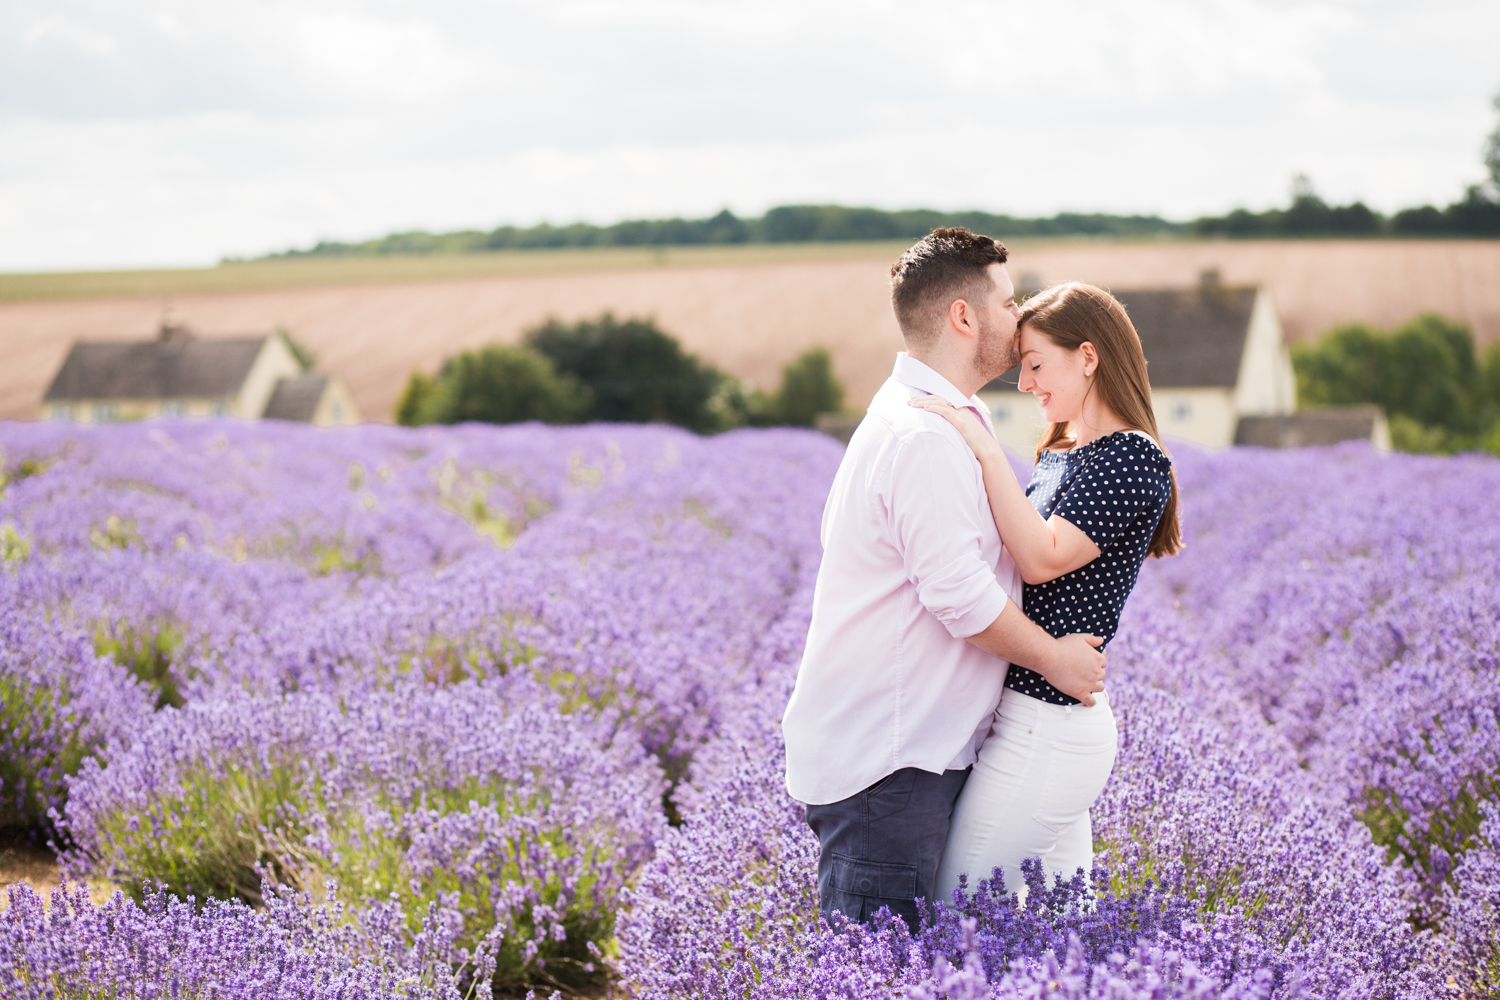 Sophie-Evans-Photograpy-Cotswold-Lavander-Engagement-shoot-Cotswold-wedding-photographer-31.jpg